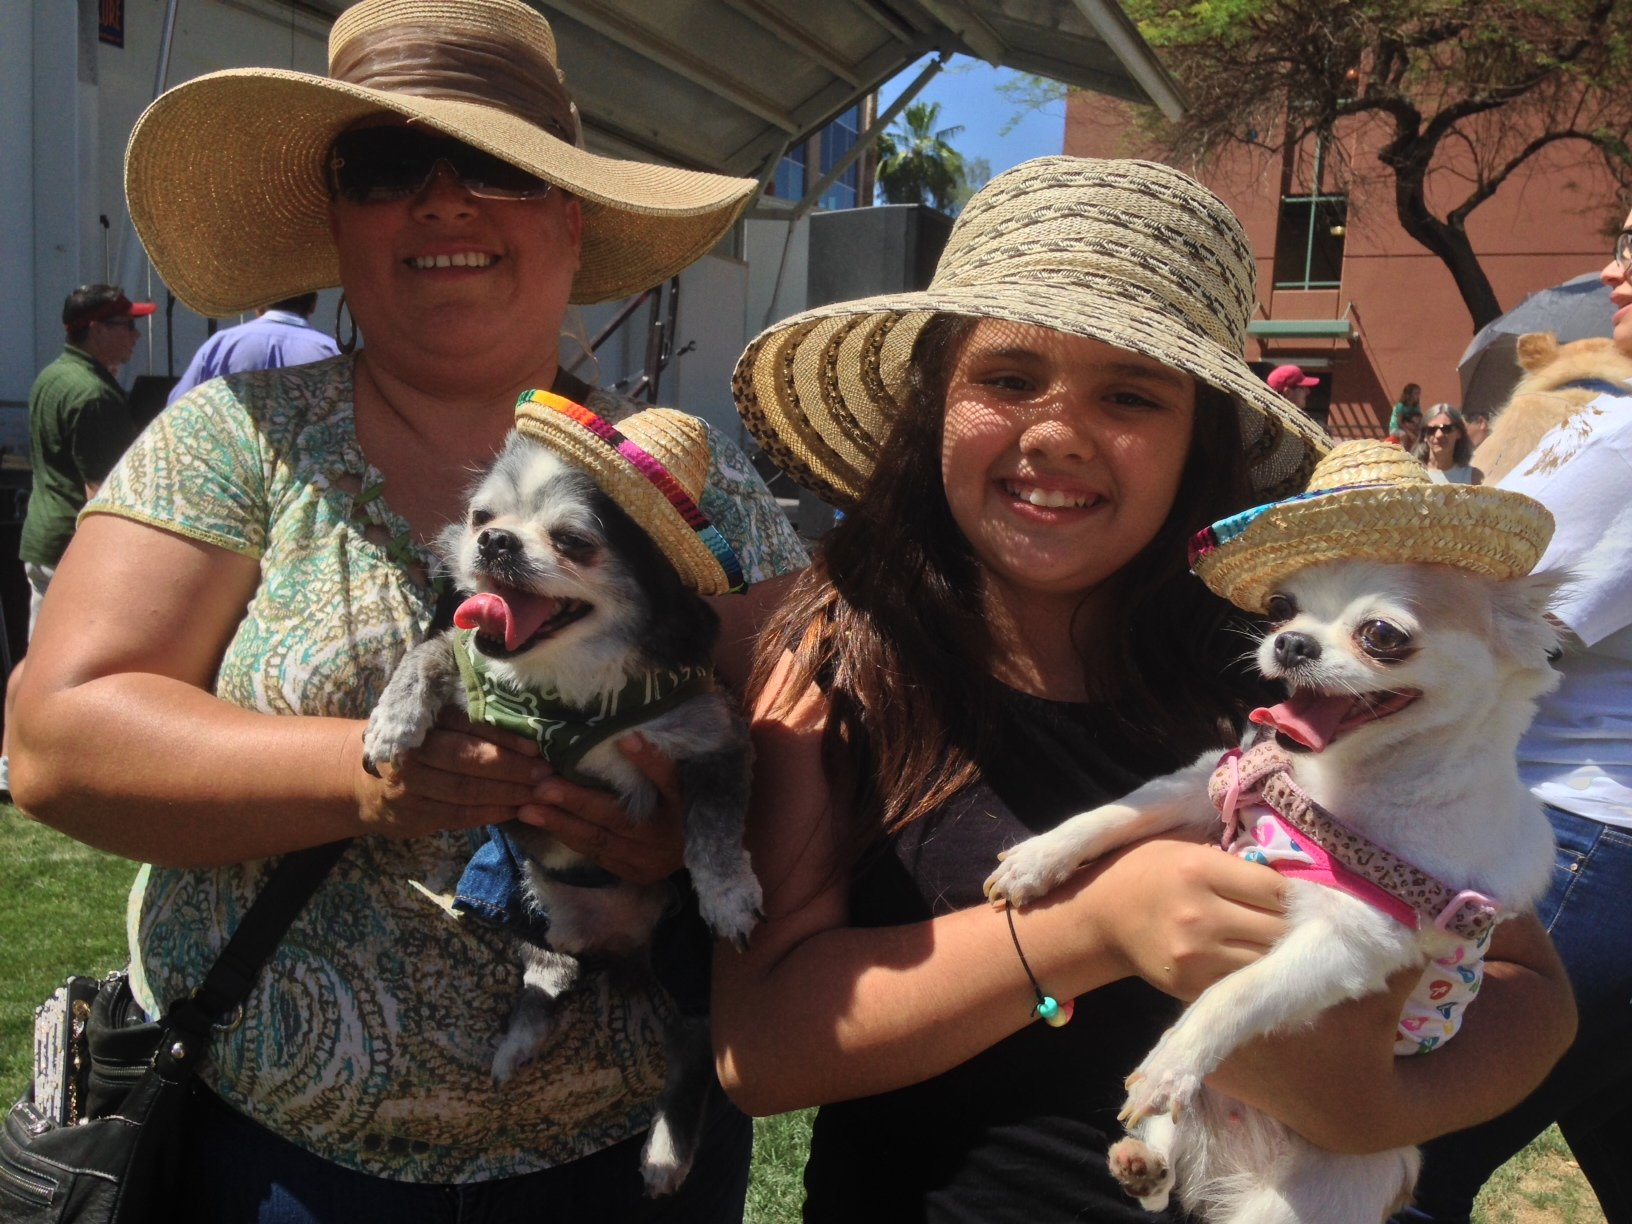 Benito (left) and Rainy join other Chihuahuas at a Chandler Cinco de Mayo celebration Saturday. (Source: Christina Batson, cbs5az.com)